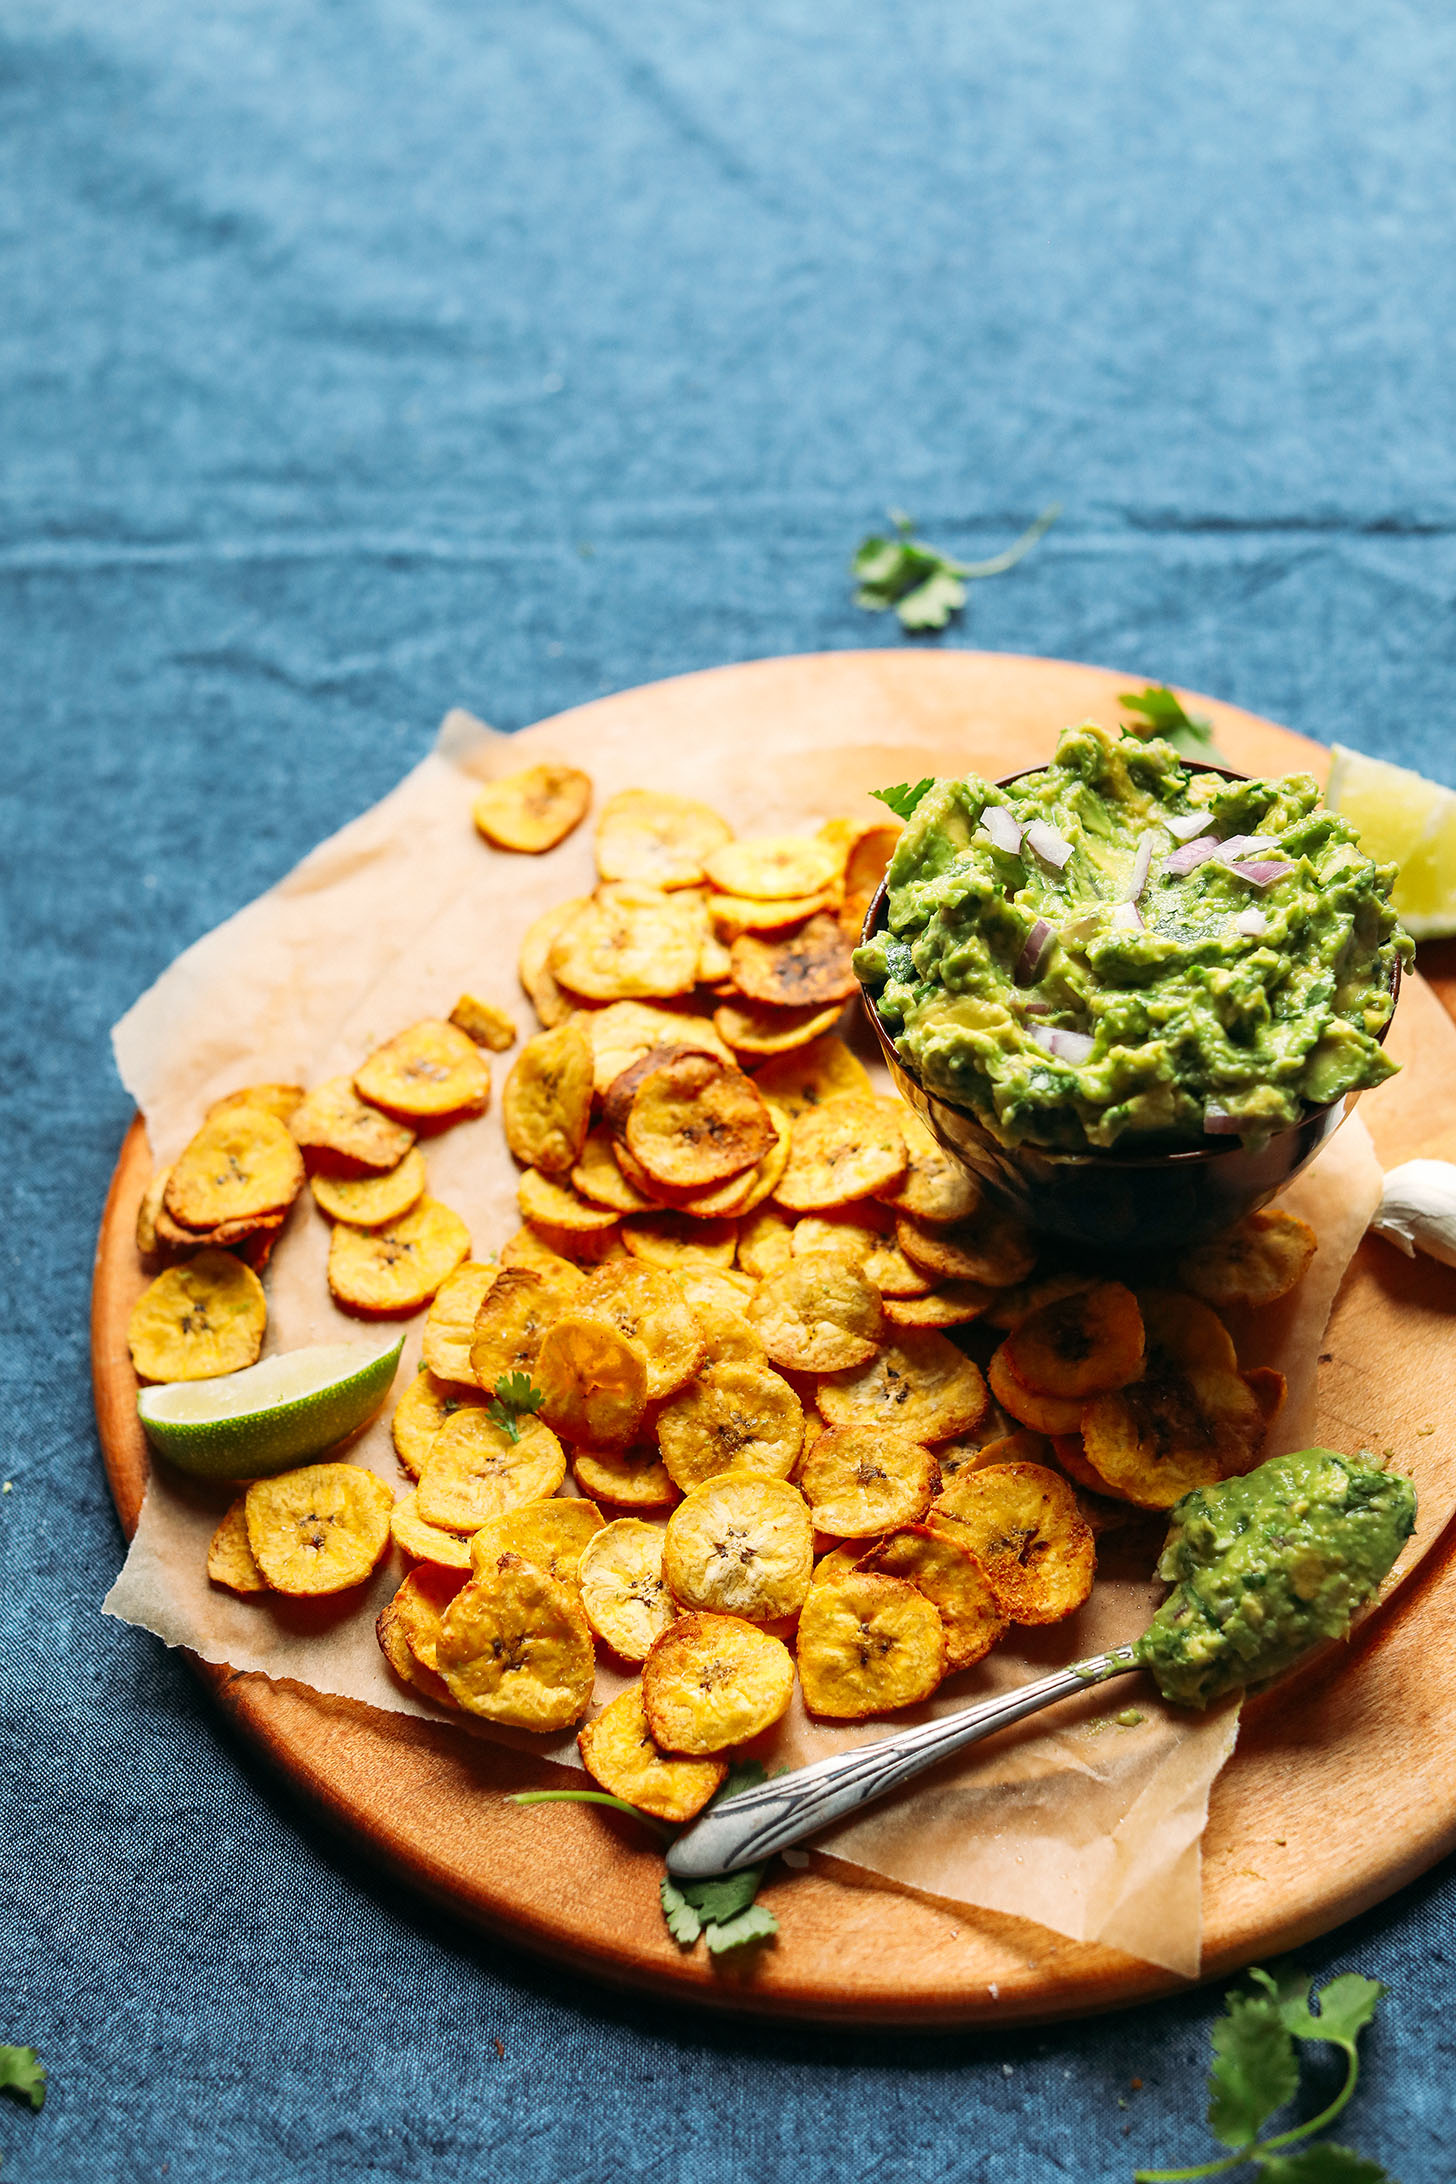 Wood cutting board with homemade Baked Plantain Chips and a bowl of Garlicky Guacamole